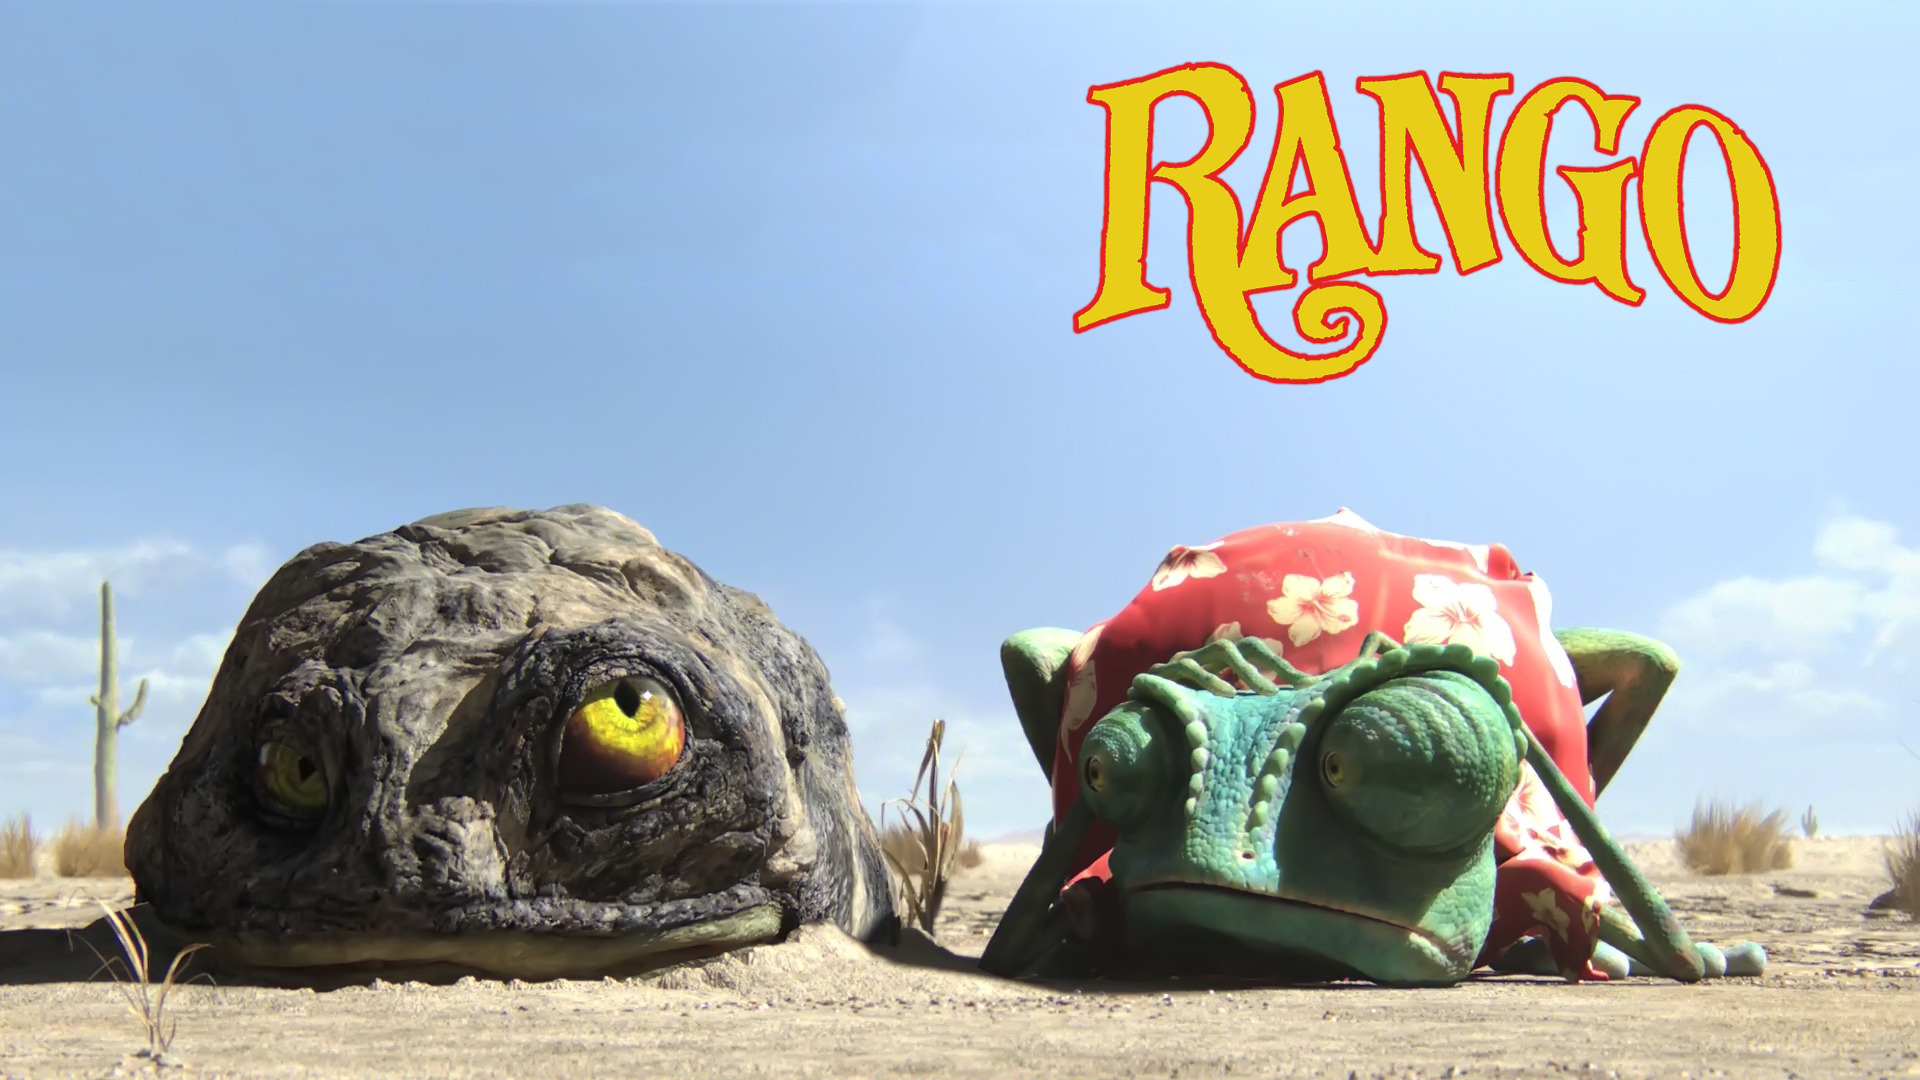 Rango de Johnny Depp Walpapers HD